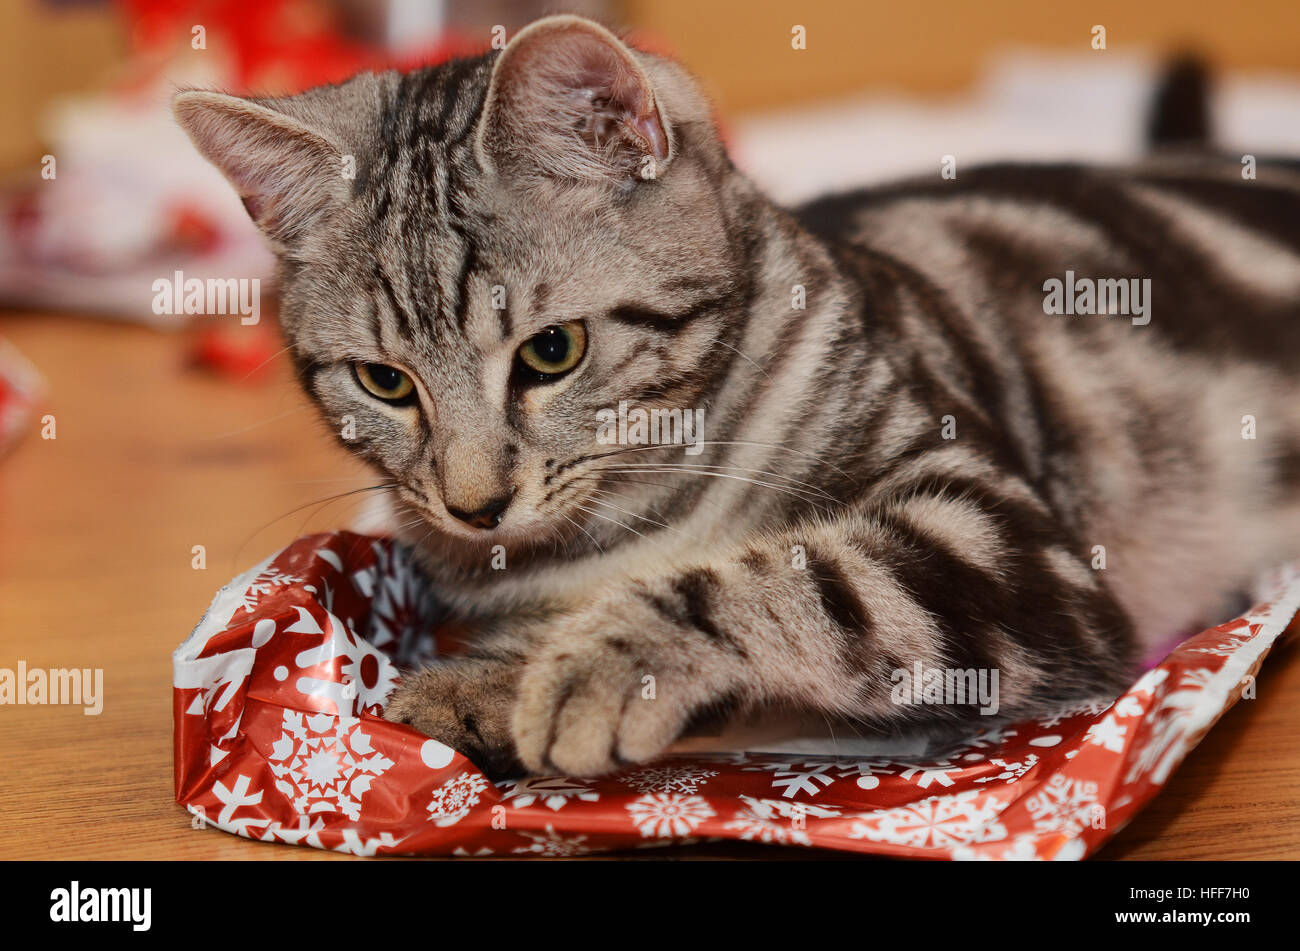 a-6-month-old-tabbybengal-kitten-opening-his-christmas-presents-HFF7H0.jpg